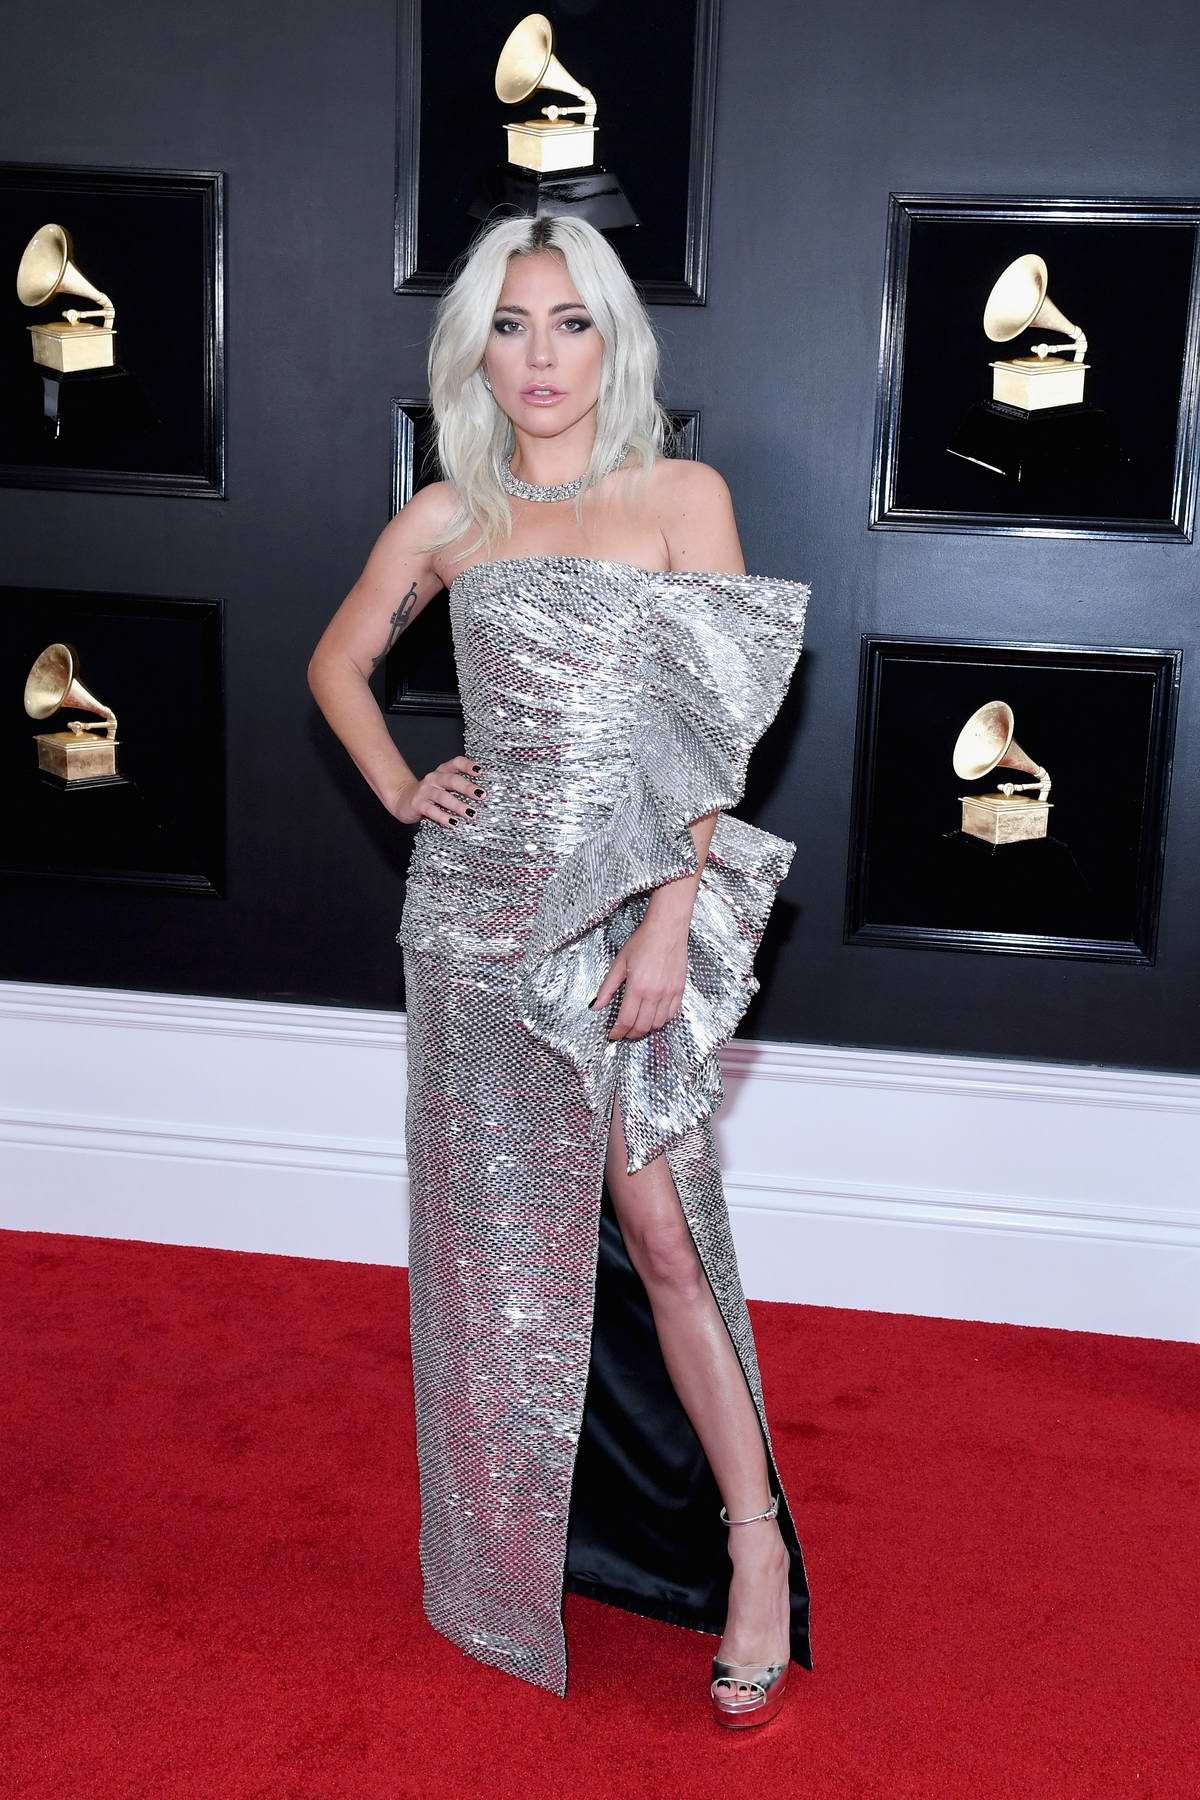 lady gaga attends the 61st annual grammy awards (2019 ...